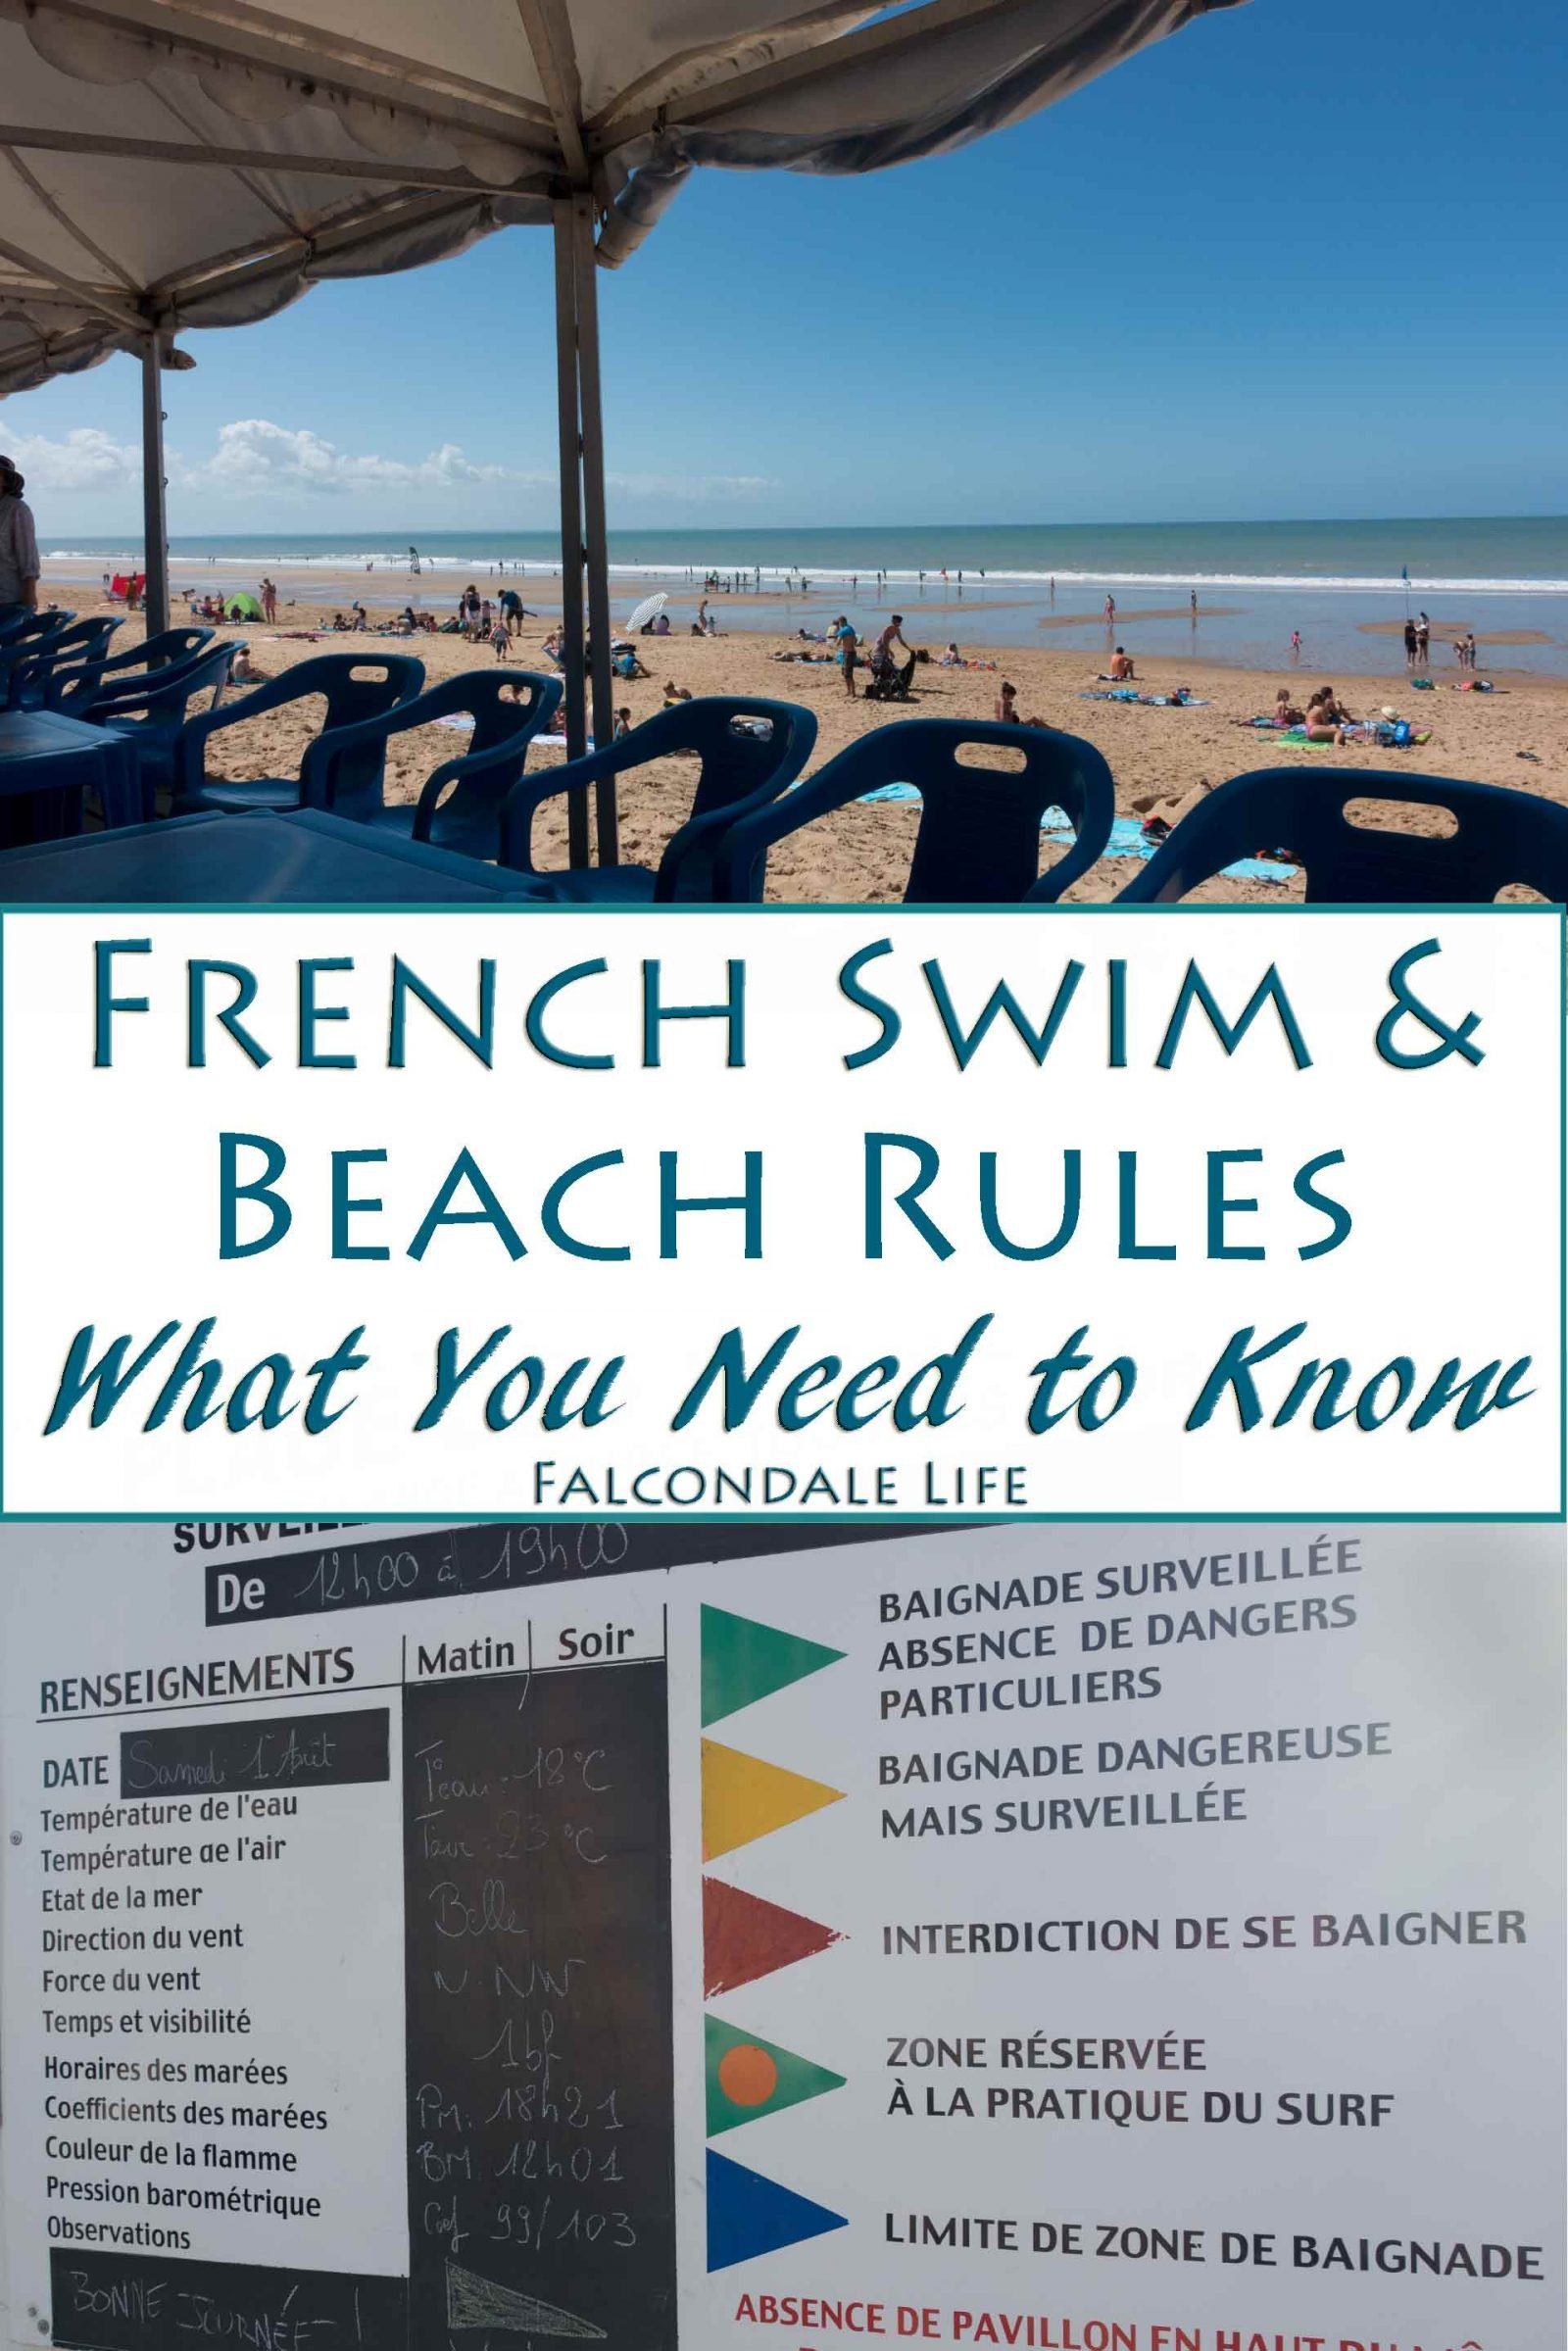 French Swim and Beach Rules - what you might need to know on Falcondale Life blog. Some rules may surprise you but in France there is a good lifeguard service. Laws are set both nationally and locally. At swimming pools there are commonly some rules about swimwear and suncream. Read more on the blog.